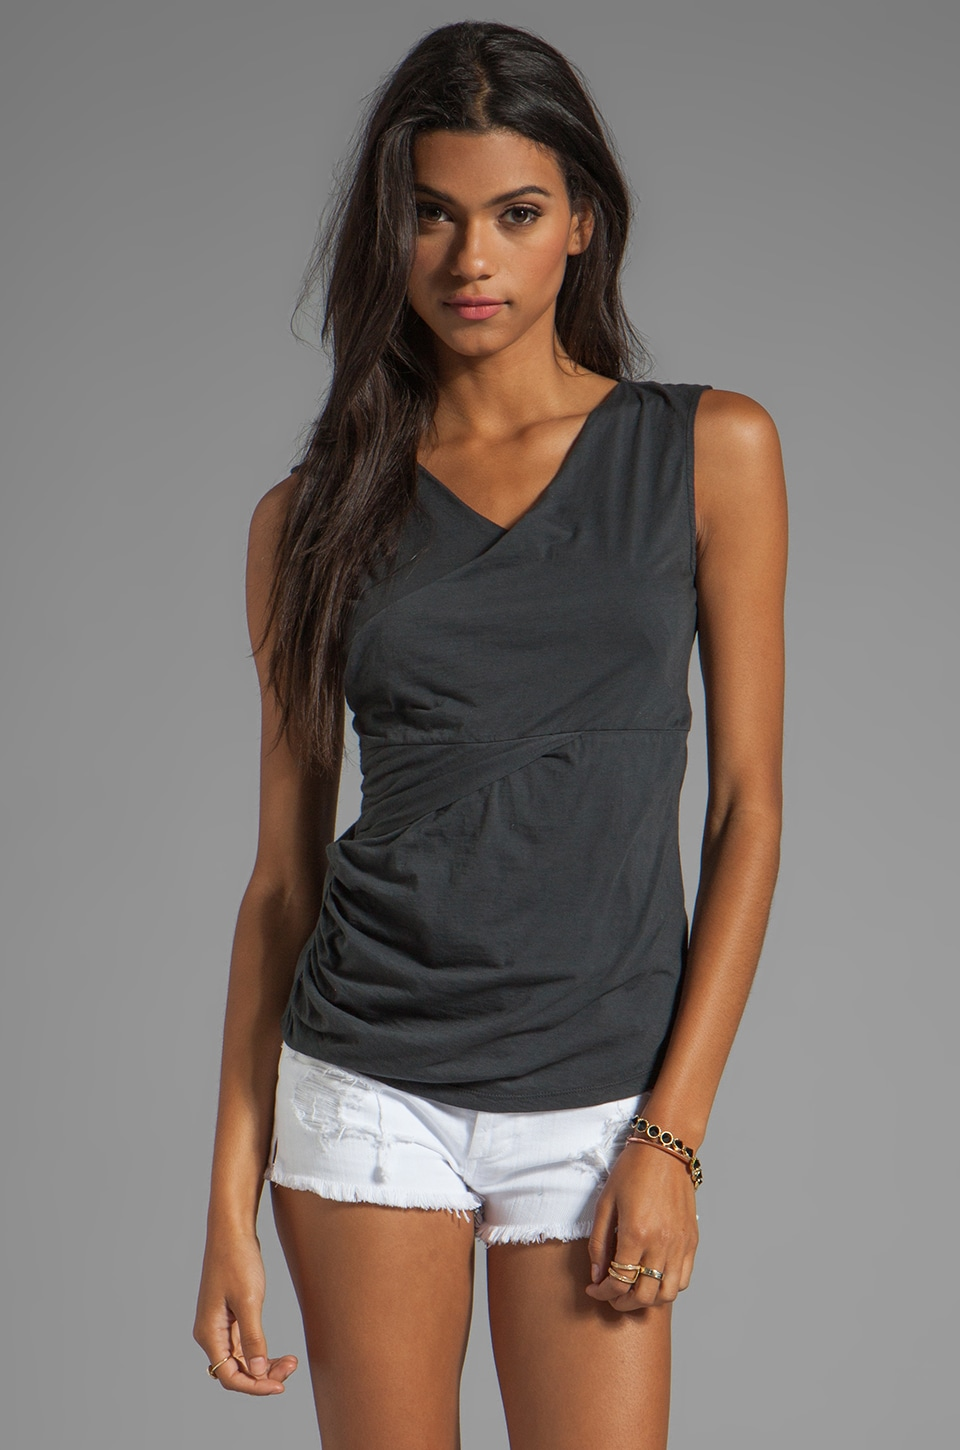 Velvet by Graham & Spencer Rachelle Gauzy Whisper Tank in Graphite